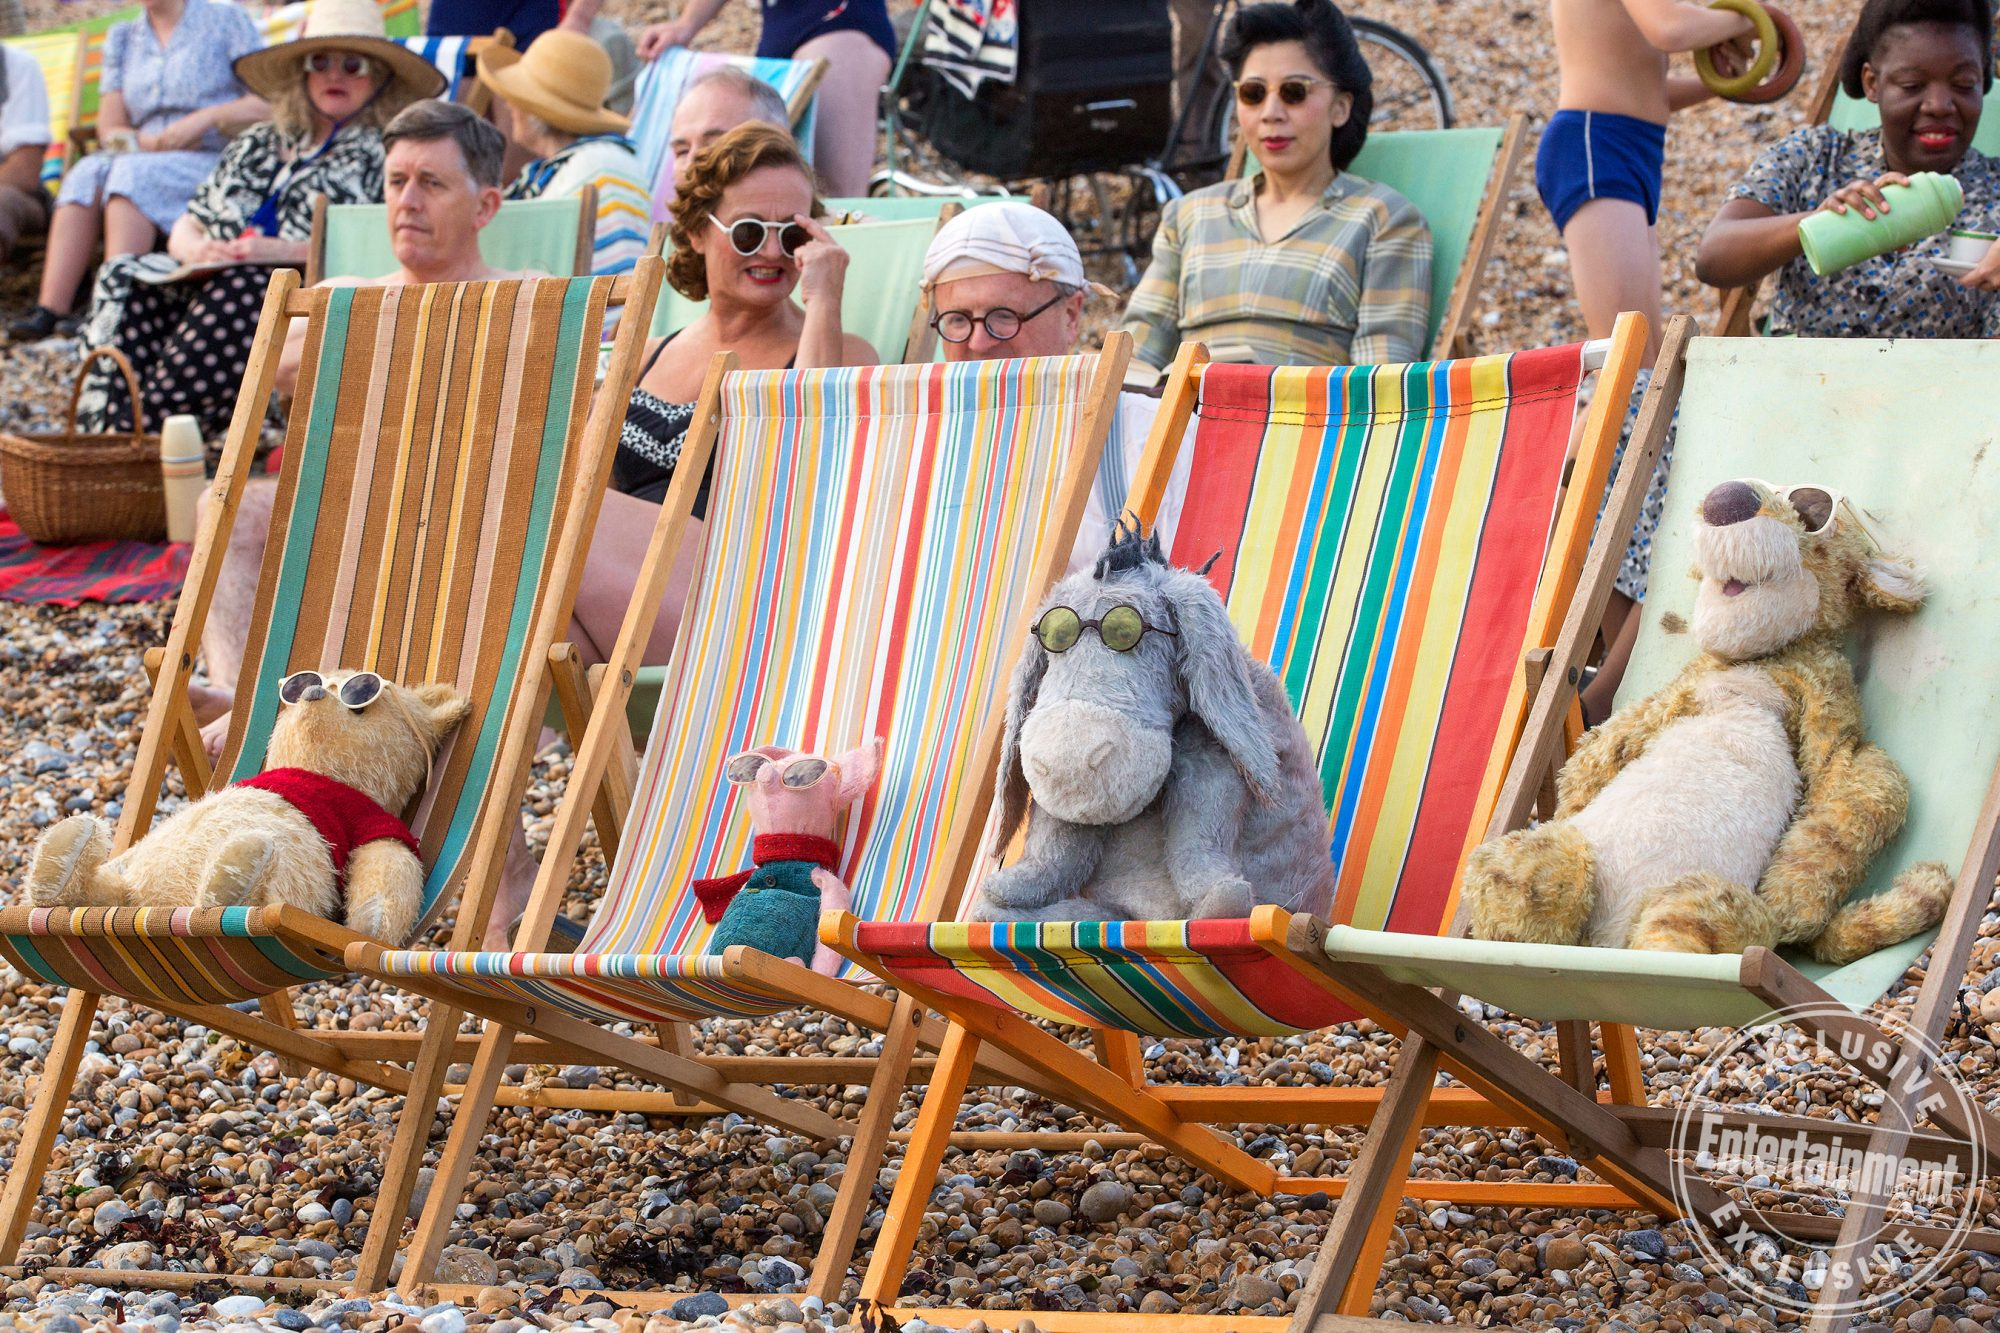 See Winnie the Pooh and friends in exclusive new Christopher Robin images christopher-robin_23723974302439032